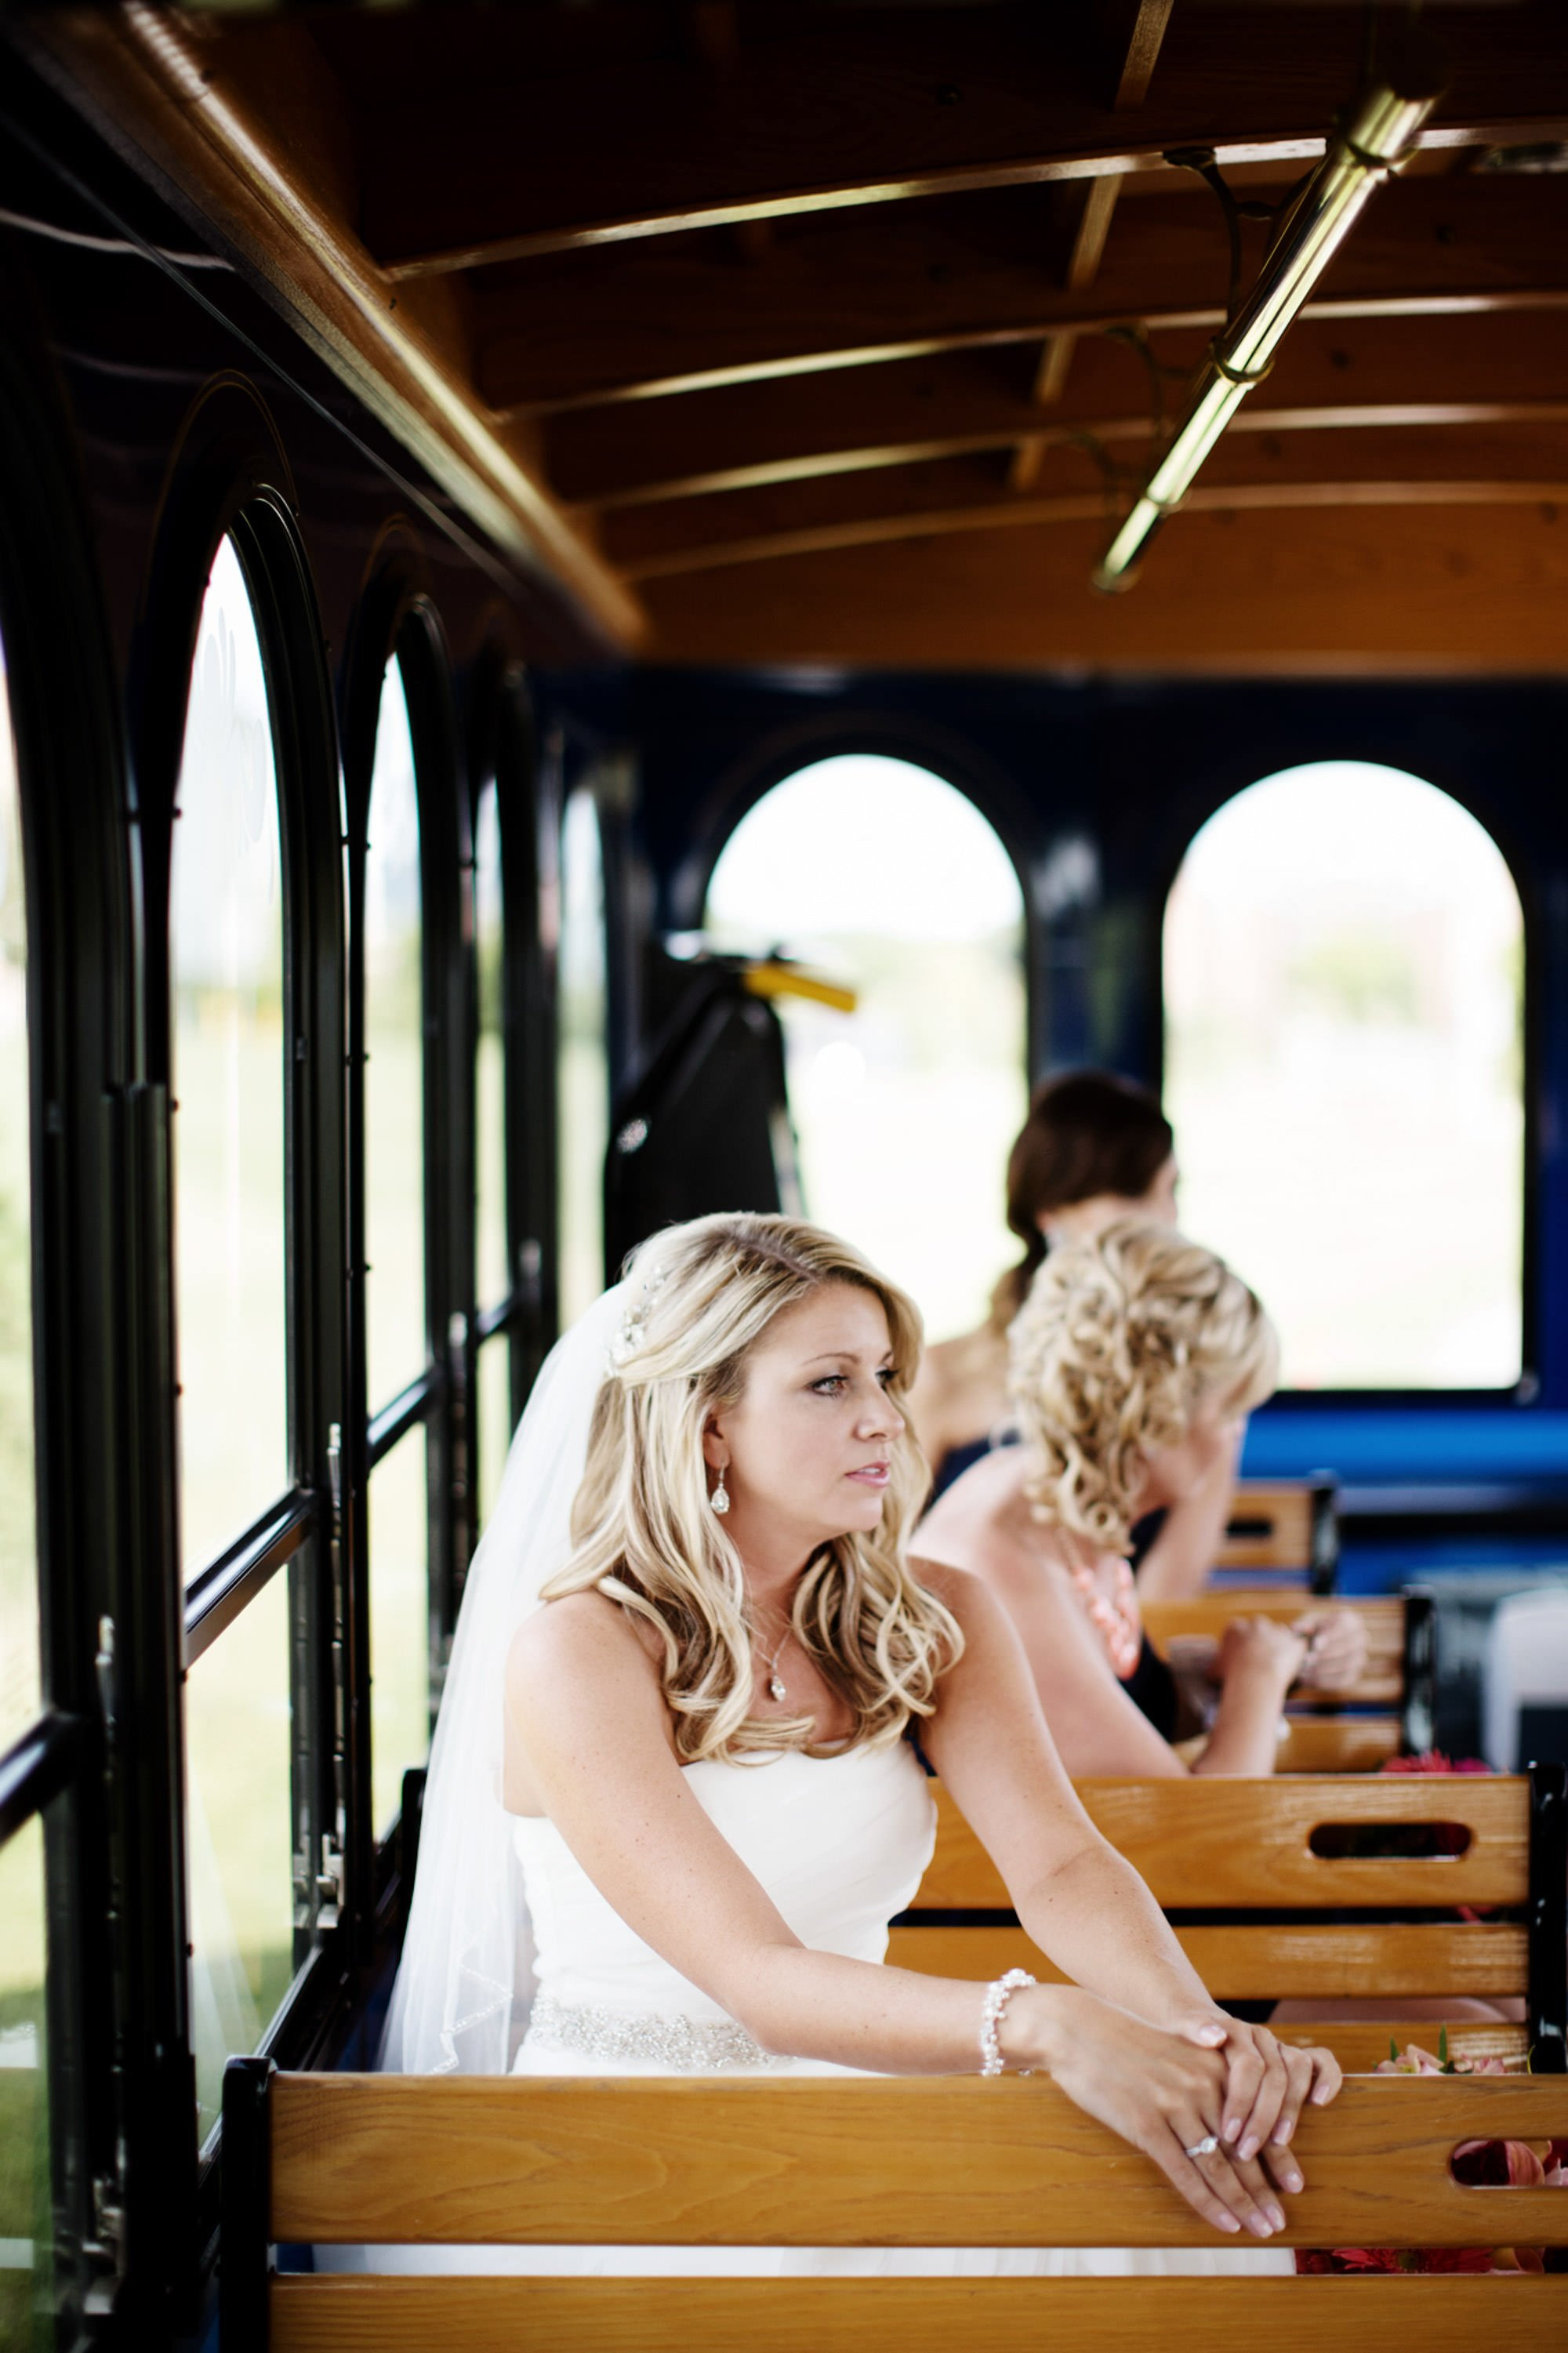 The bridal party takes a trolley to the ceremony site at Penn State University.